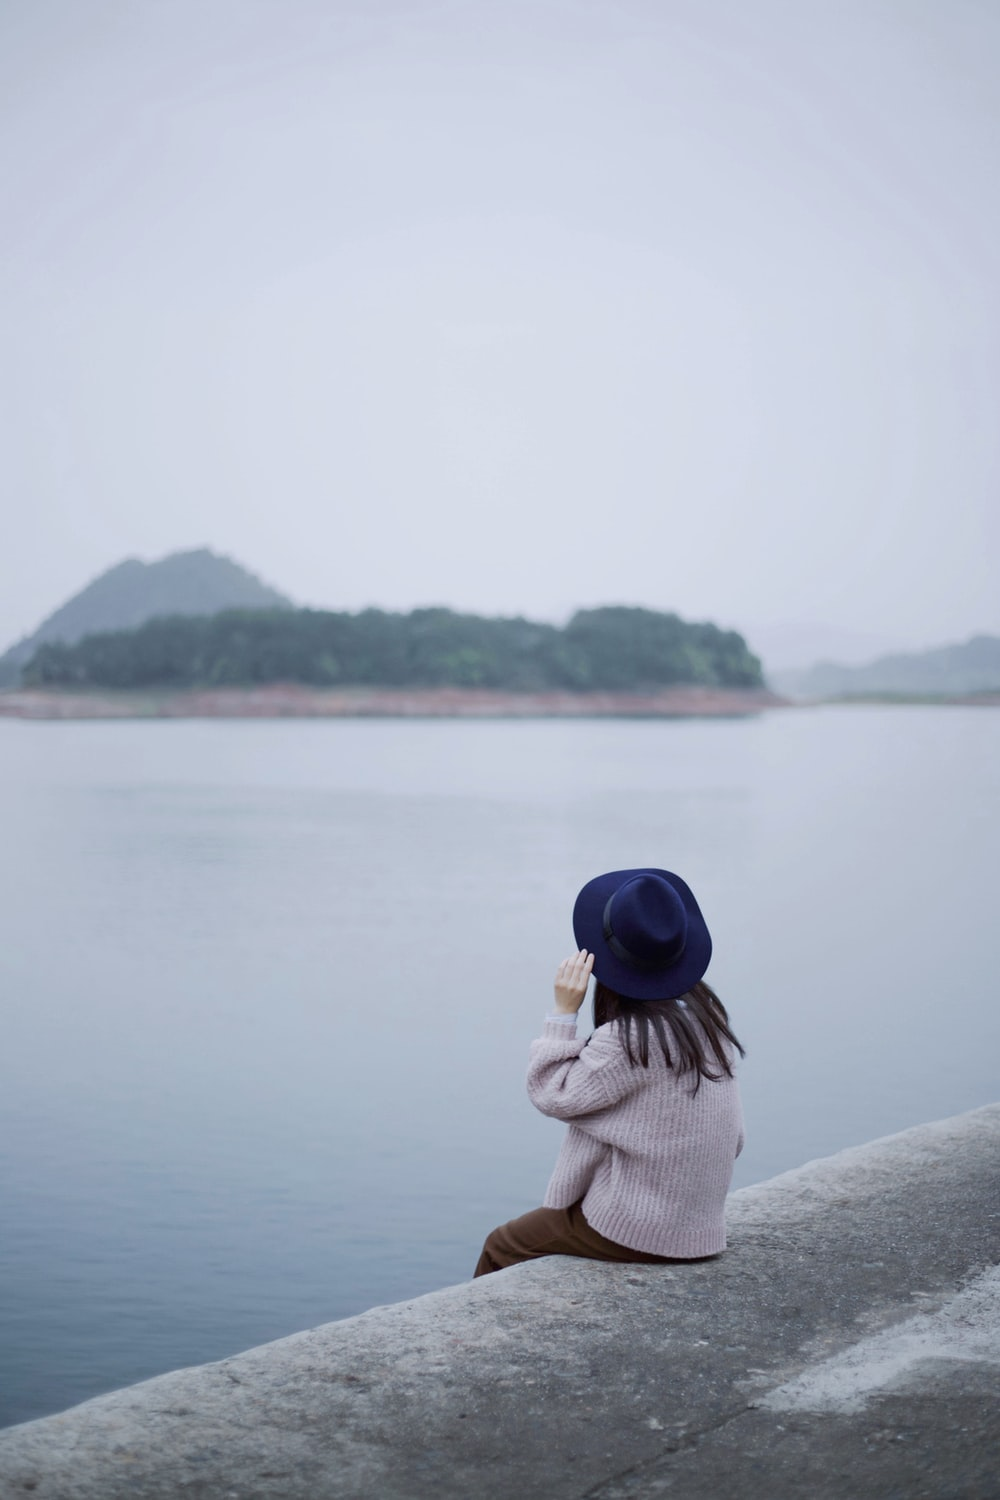 woman sitting on concrete edge in front of body of water